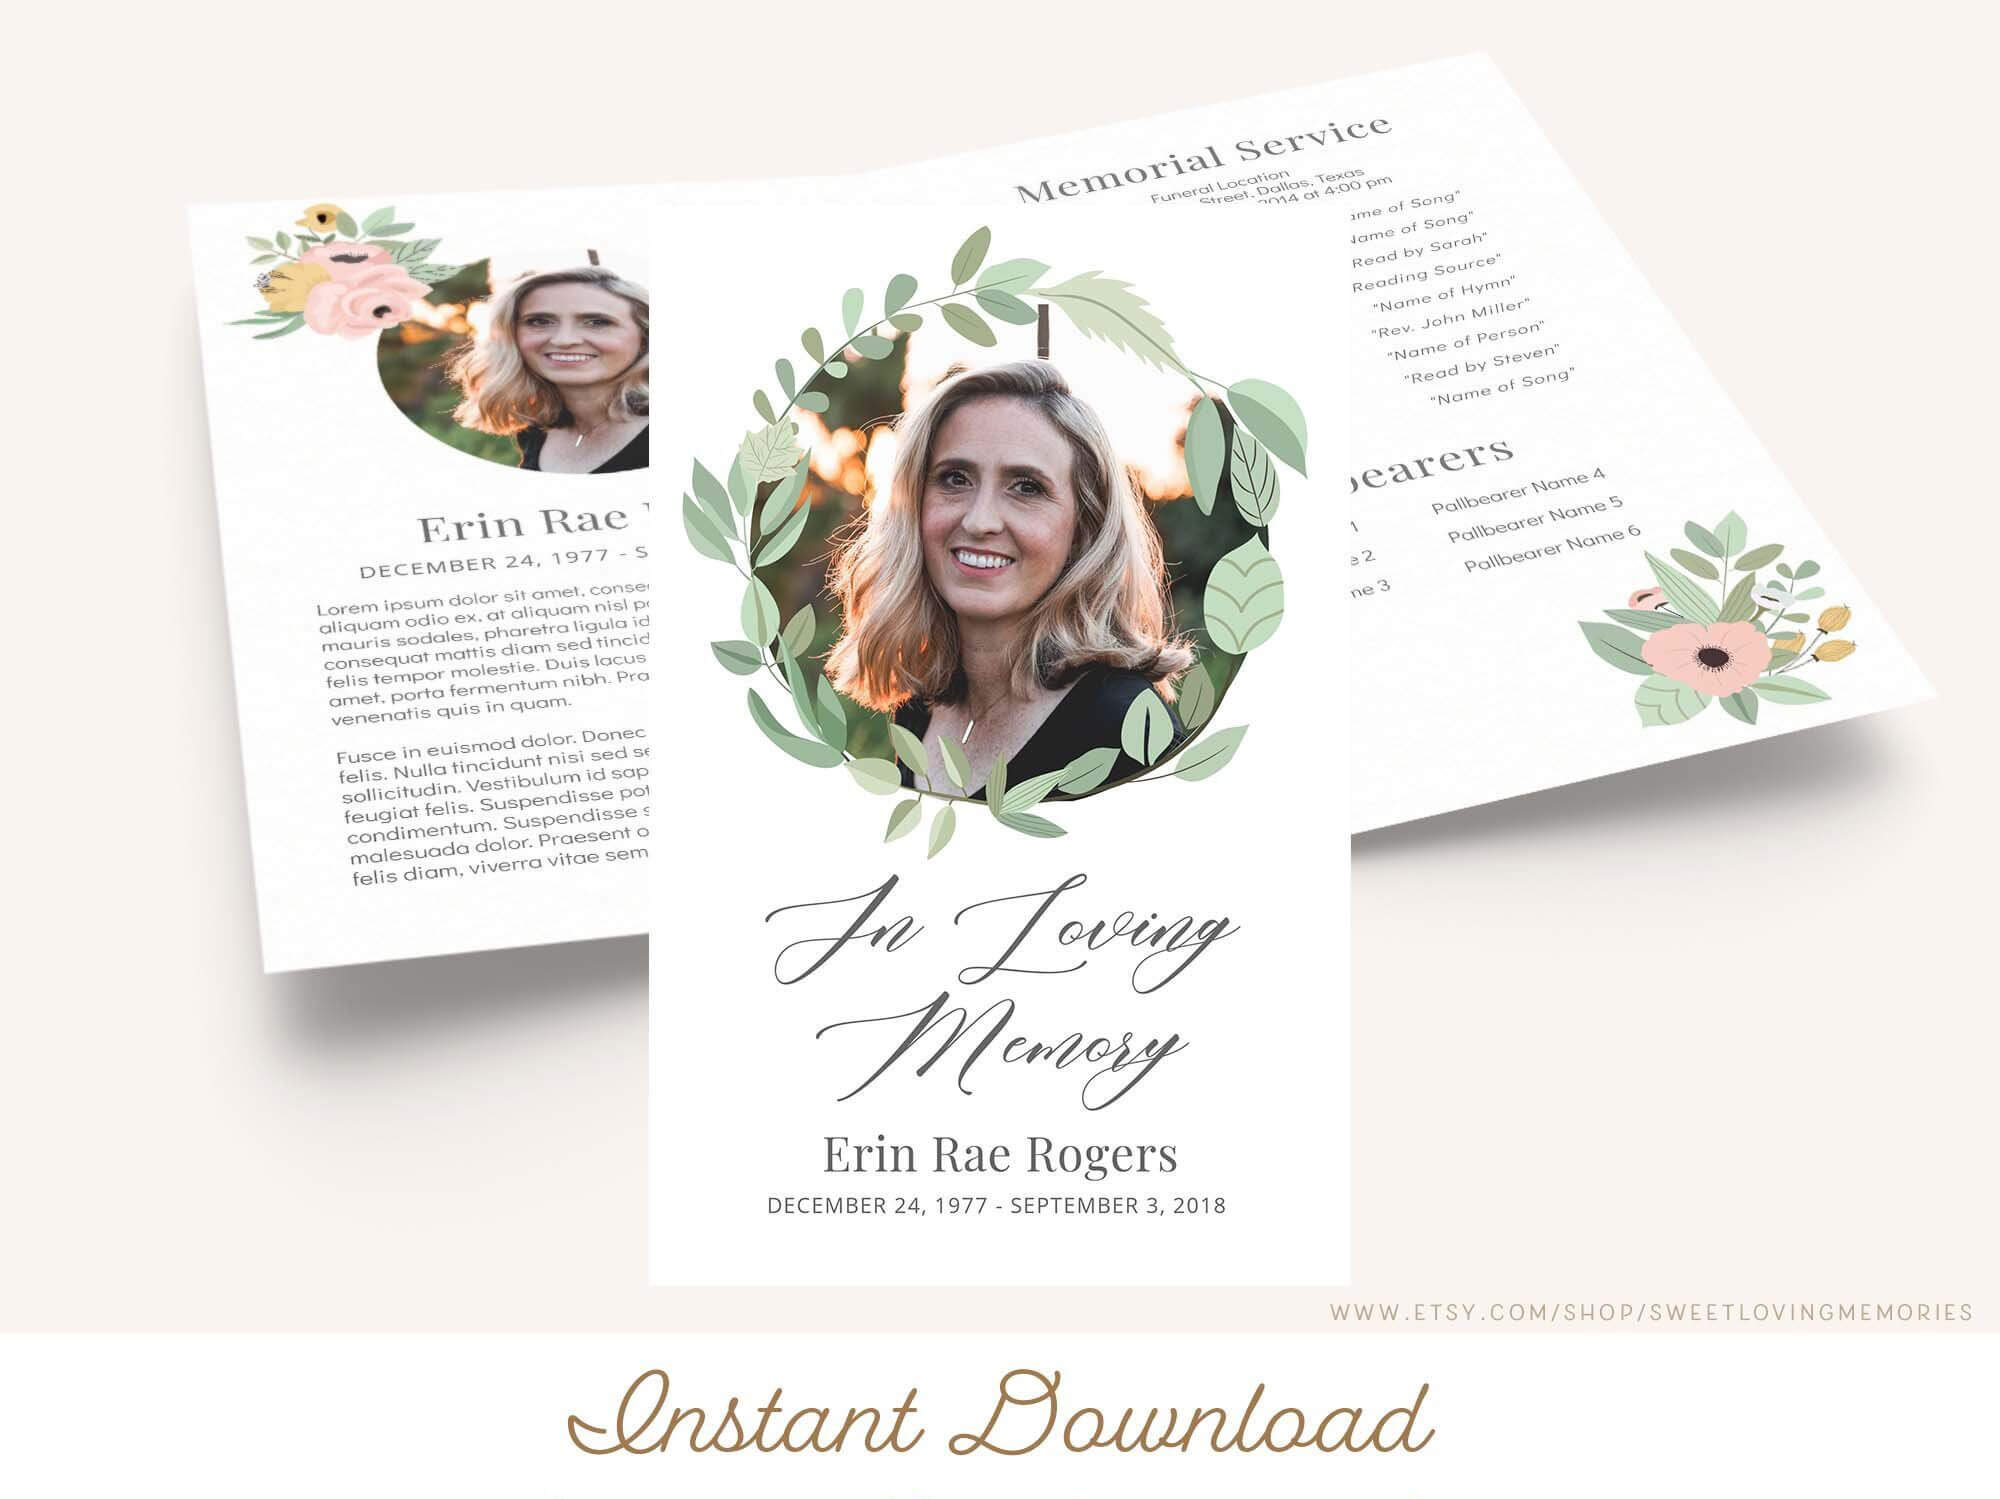 007 Template Ideas In Loving Memory Templates Fantastic Free With In Memory Cards Templates